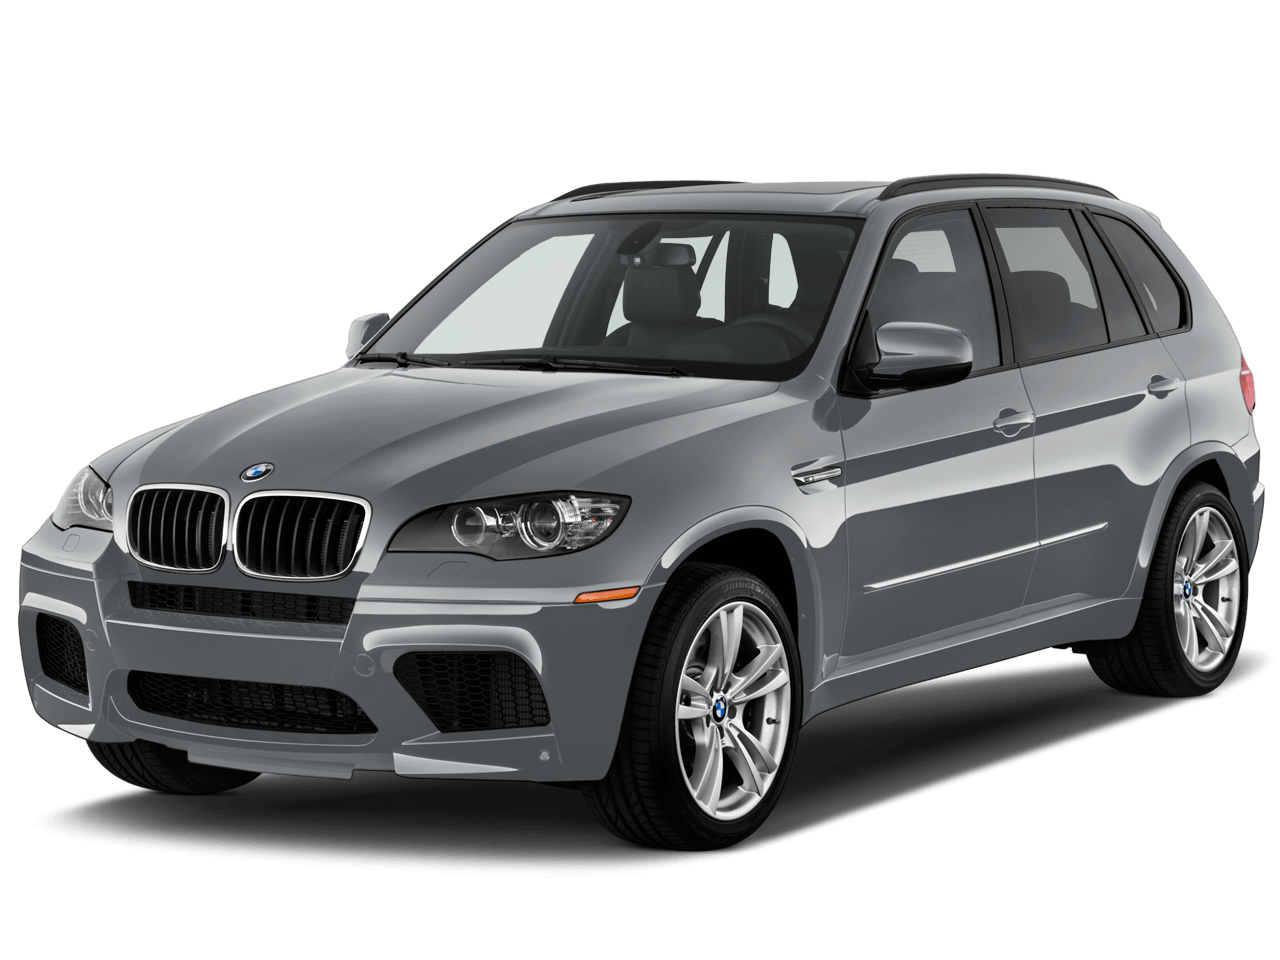 Gray X5 Bmw Png Image Download PNG Image